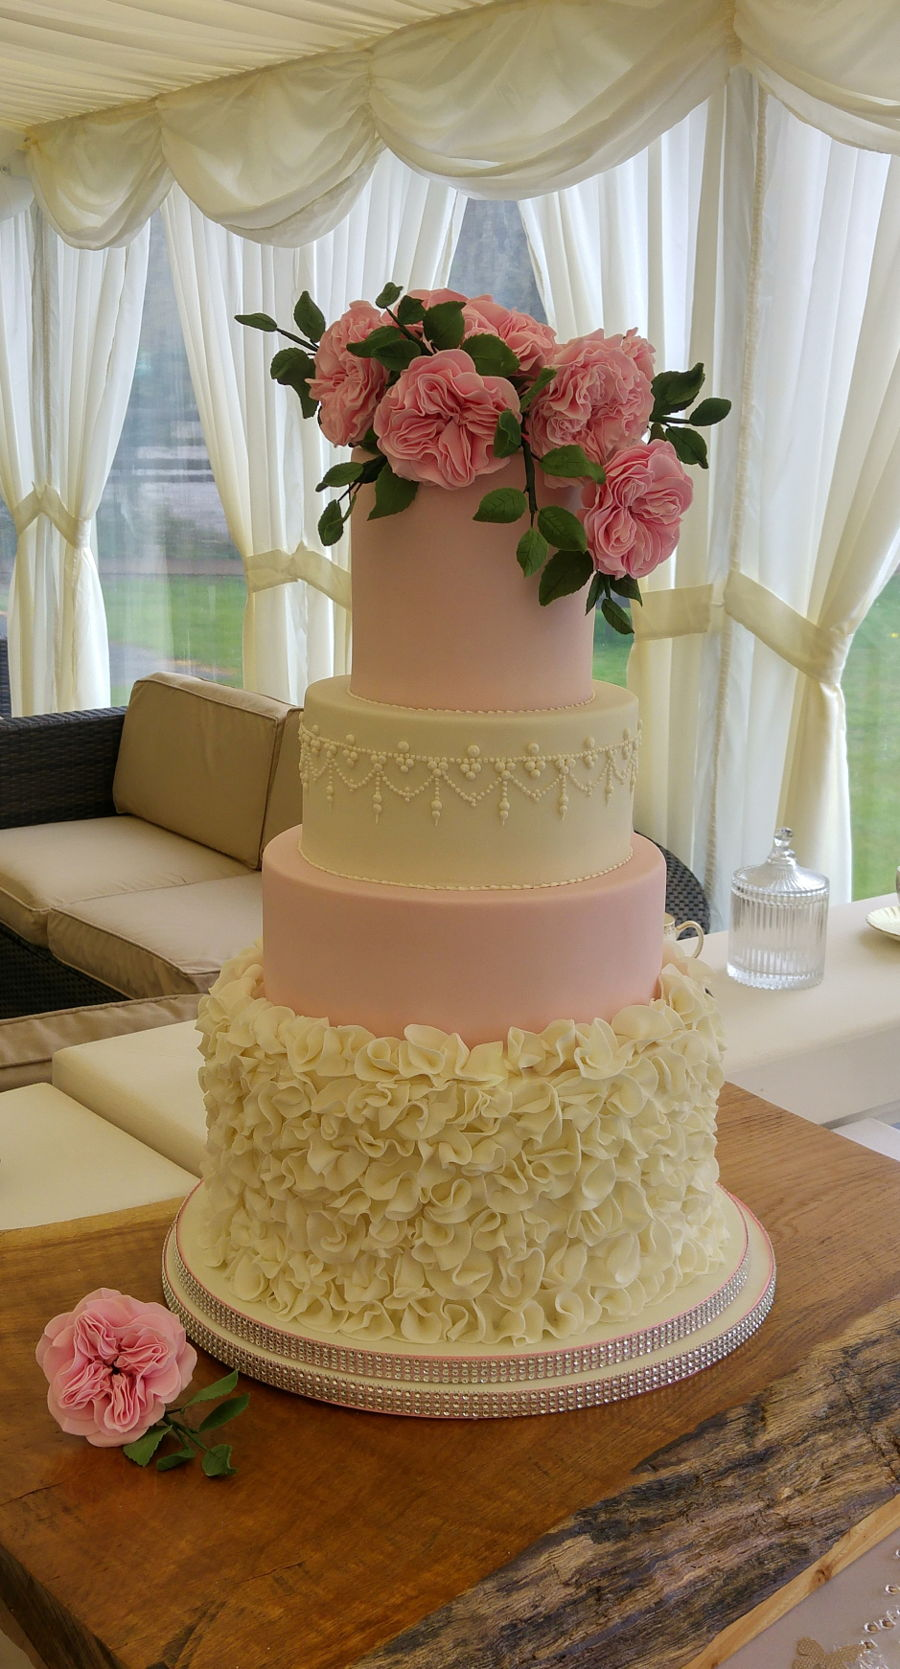 ruffles and david austin roses wedding cake. Black Bedroom Furniture Sets. Home Design Ideas